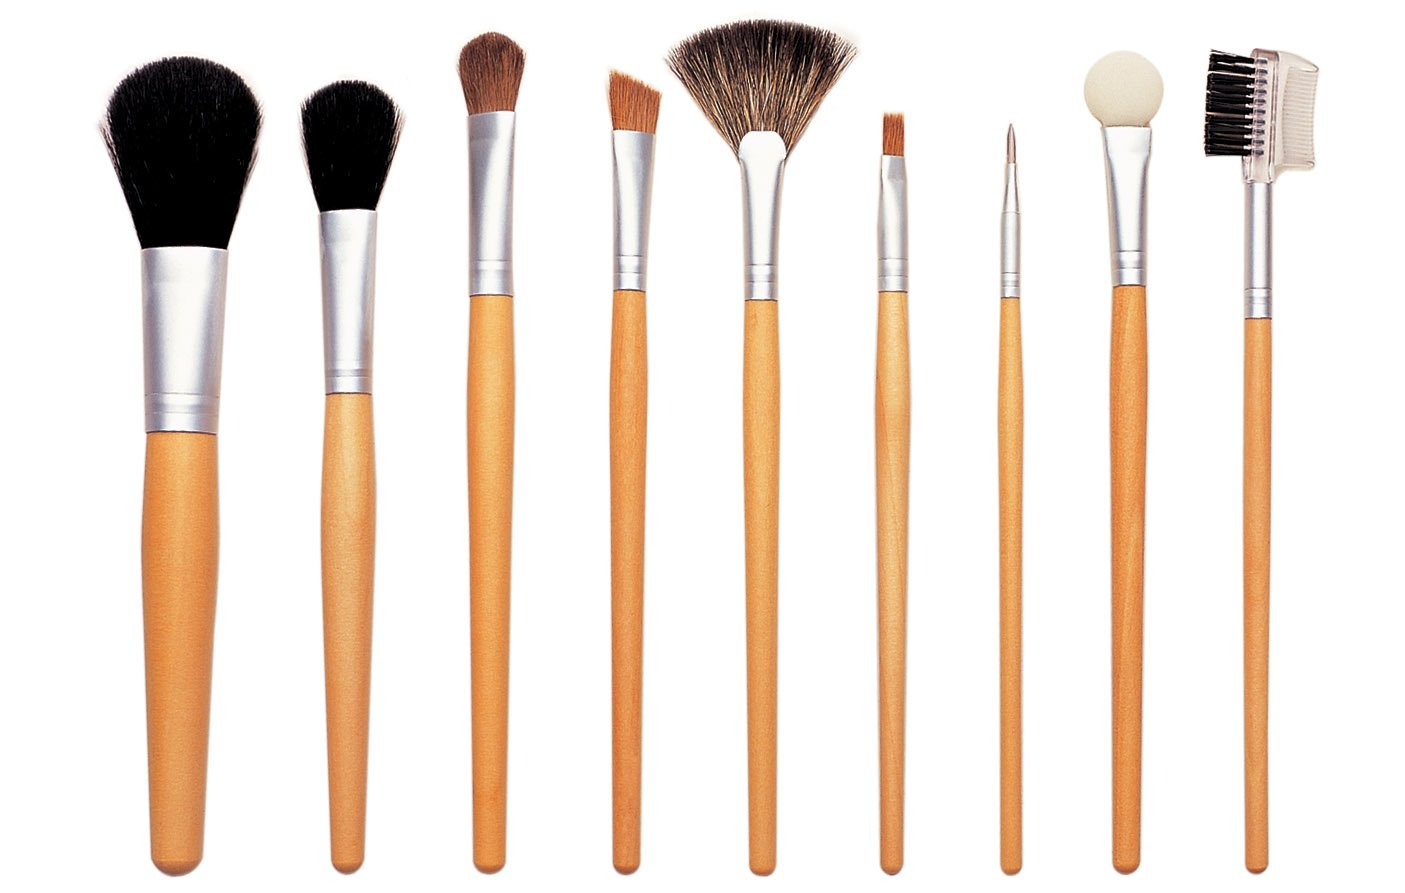 Shop makeup brush sets at ULTA. Find a variety of brush sets to help you achieve the best makeup application.